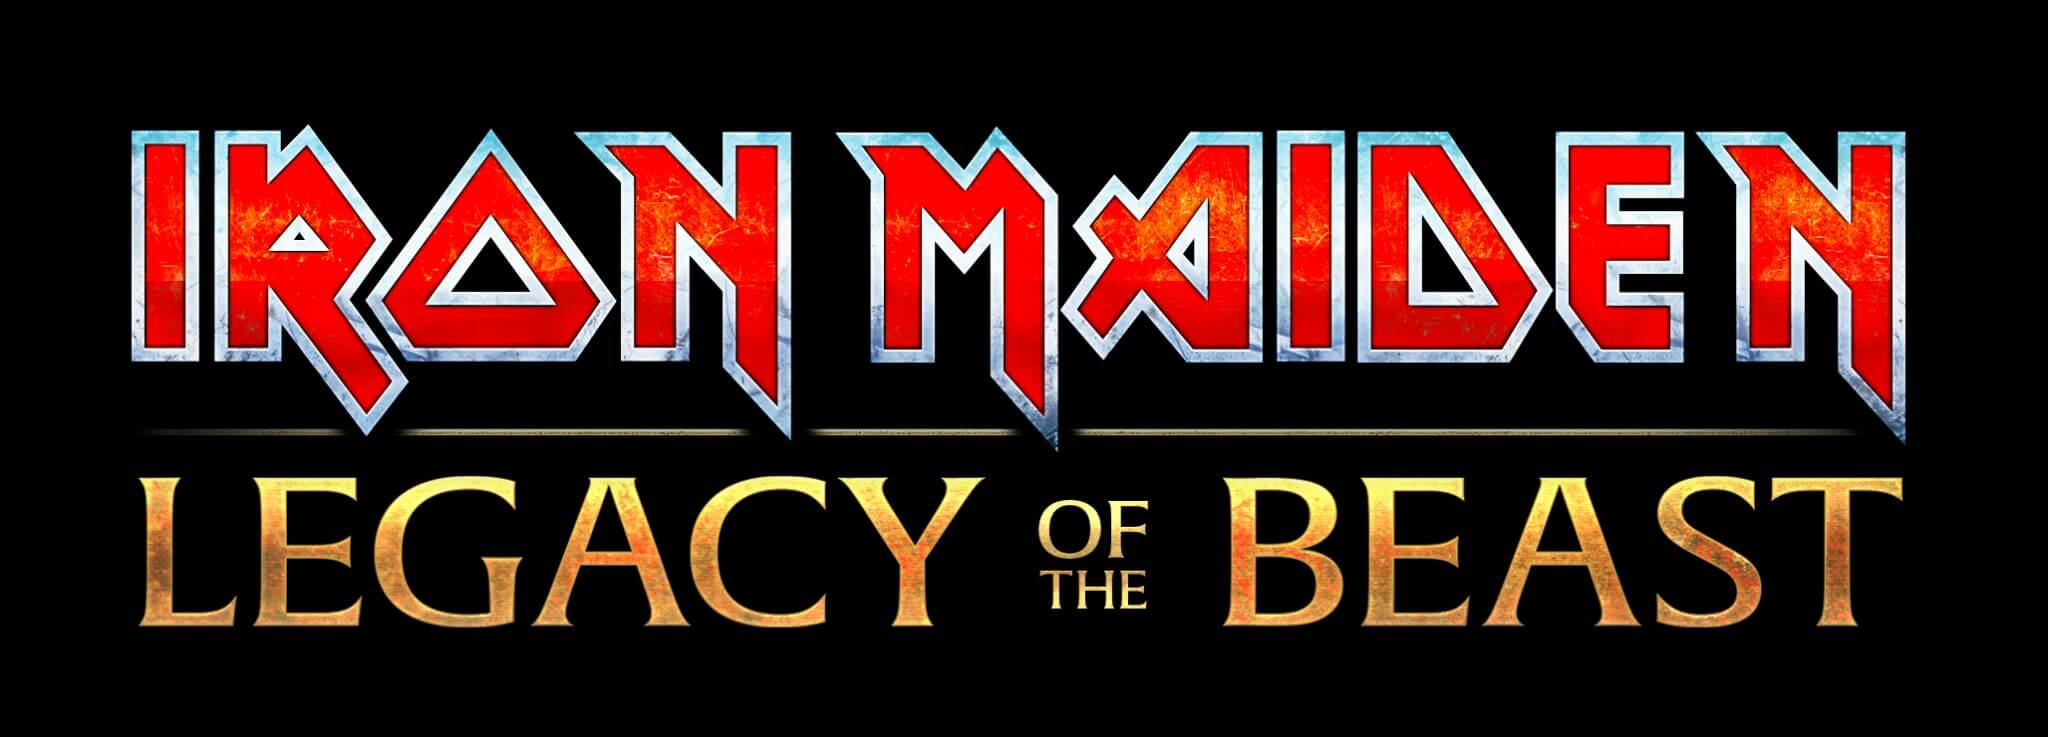 Logo von Iron Maiden: Legacy of the Beast (Bildrechte: Roadhouse Interactive)